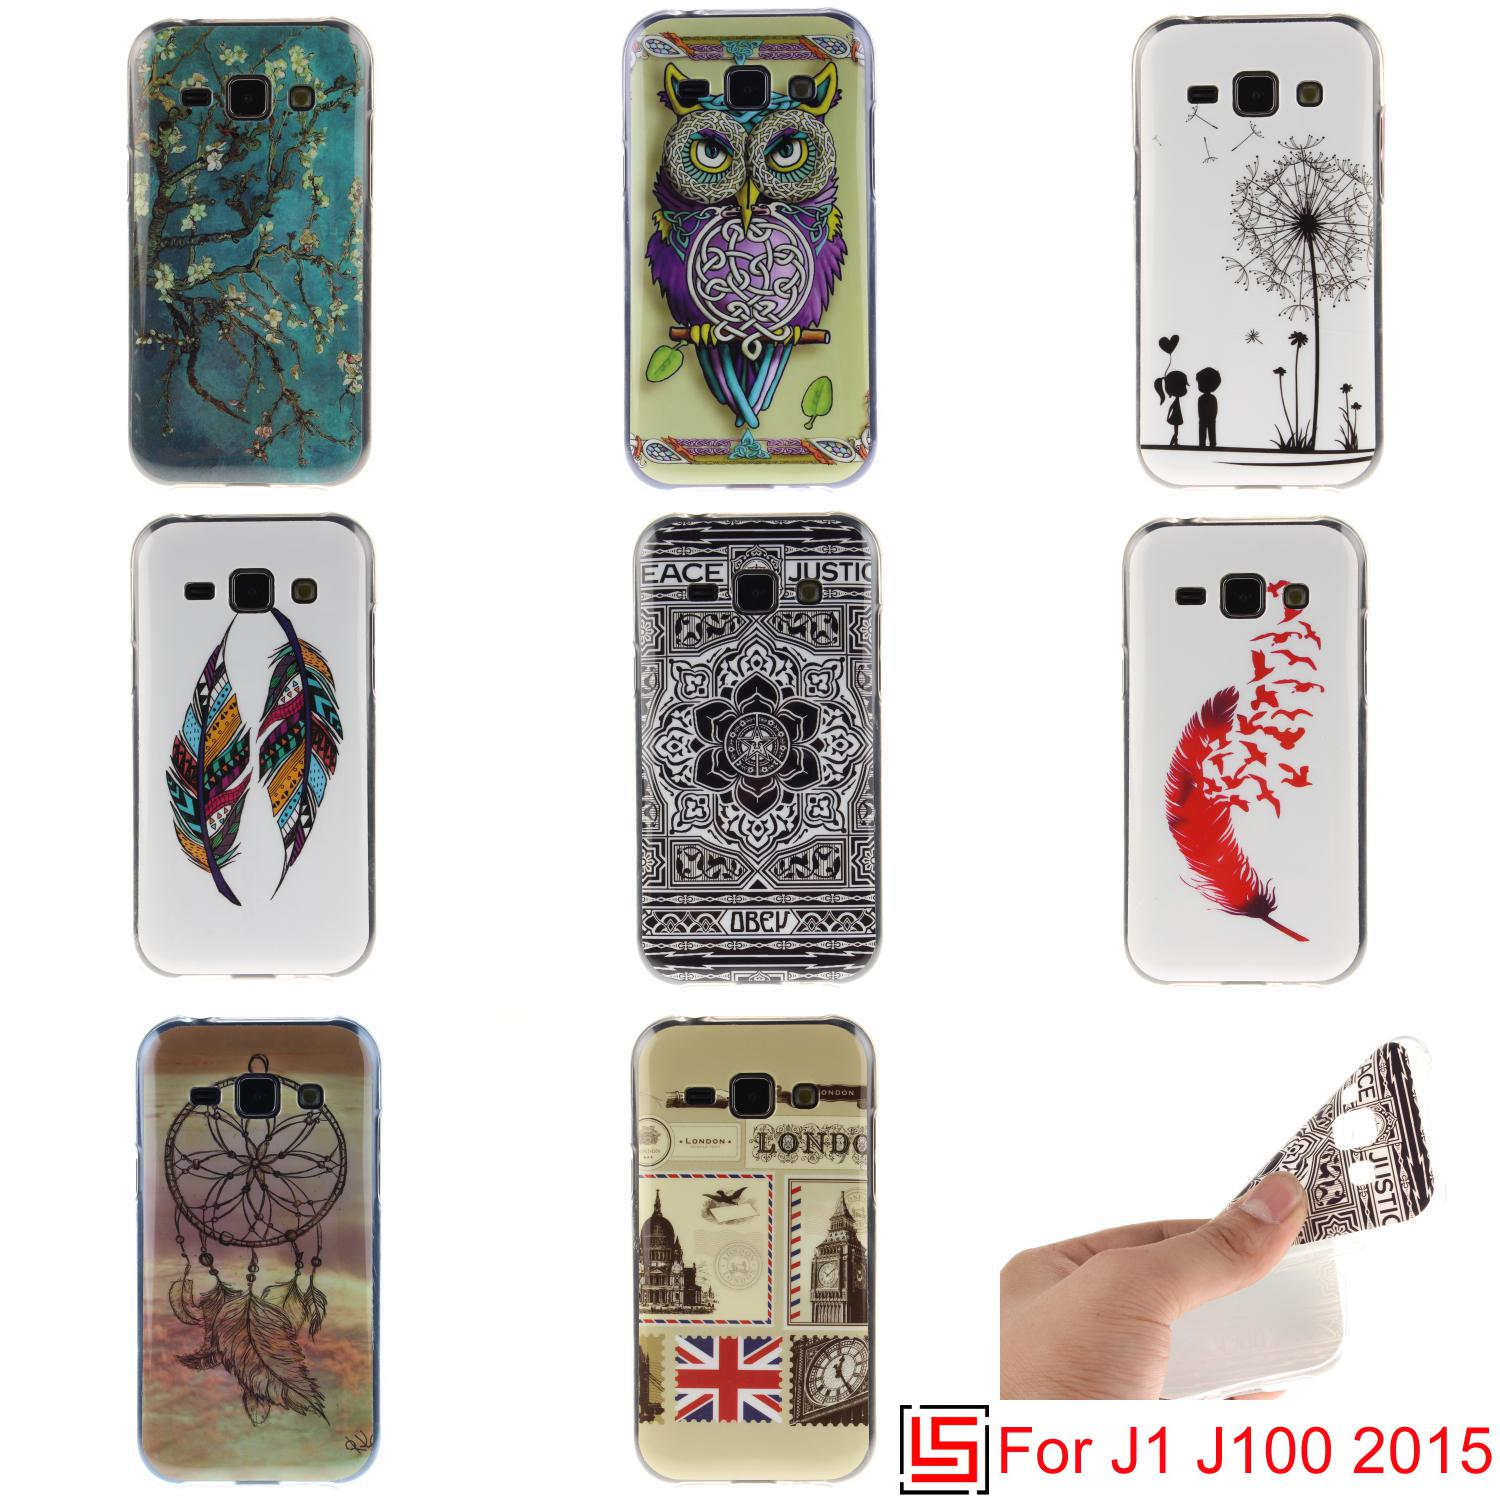 Ultra Thin TPU Silicone Soft Phone Cell Mobile Case capinha cubierta kryty Cover For Samsung Sumsung Samsu Galaxy J1 2015